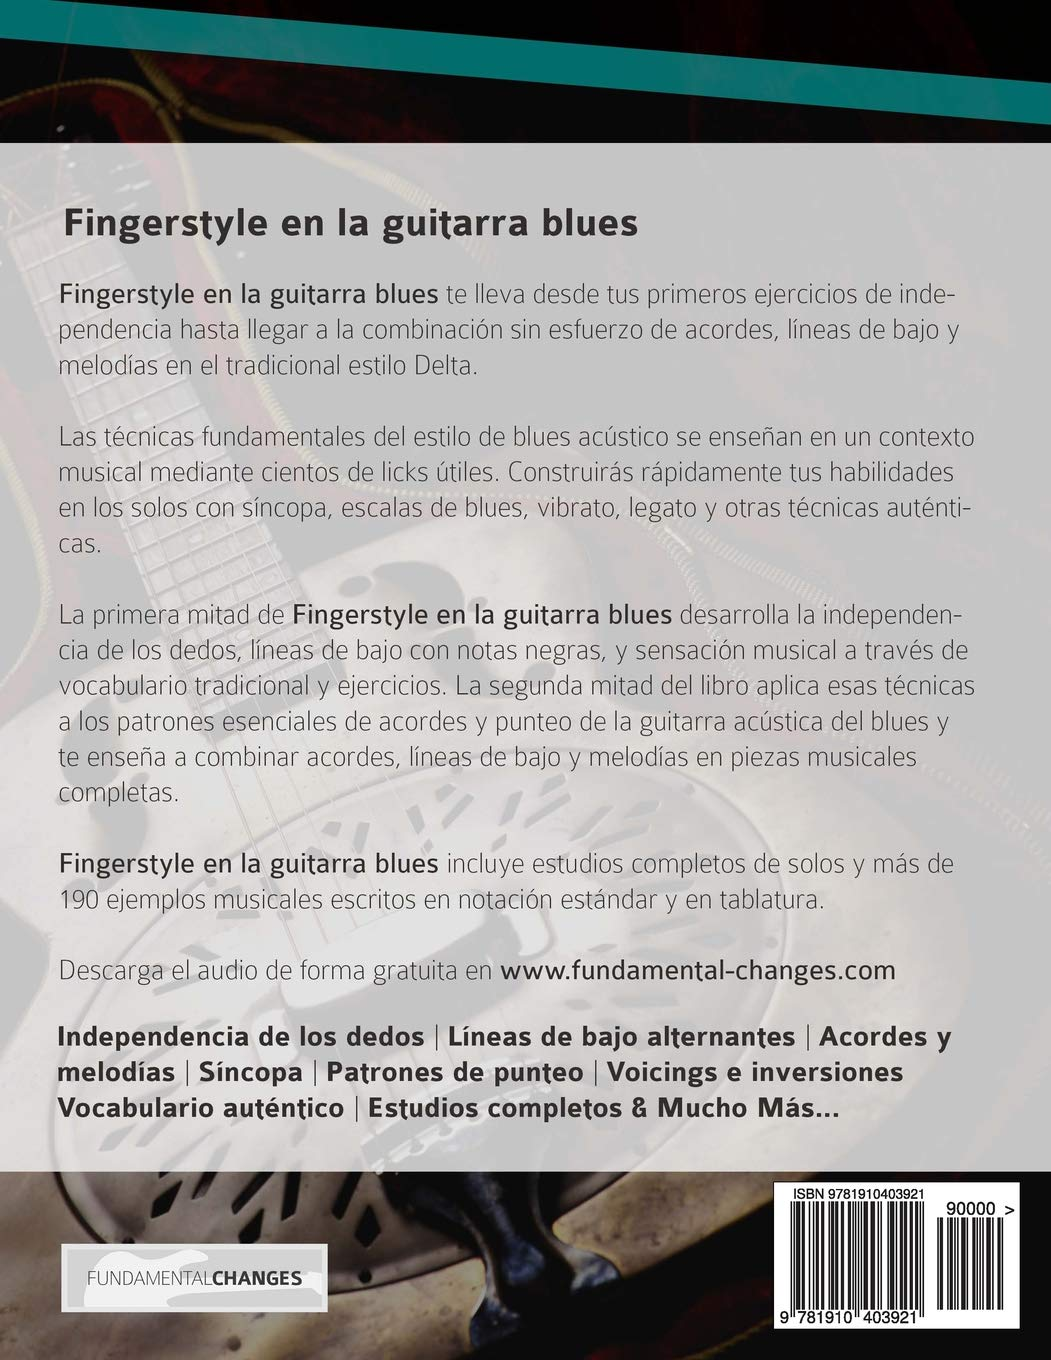 Fingerstyle en la guitarra blues: Domina el fingerpicking y los solos en la guitarra acústica del blues (Spanish Edition): Mr Joseph Alexander, ...